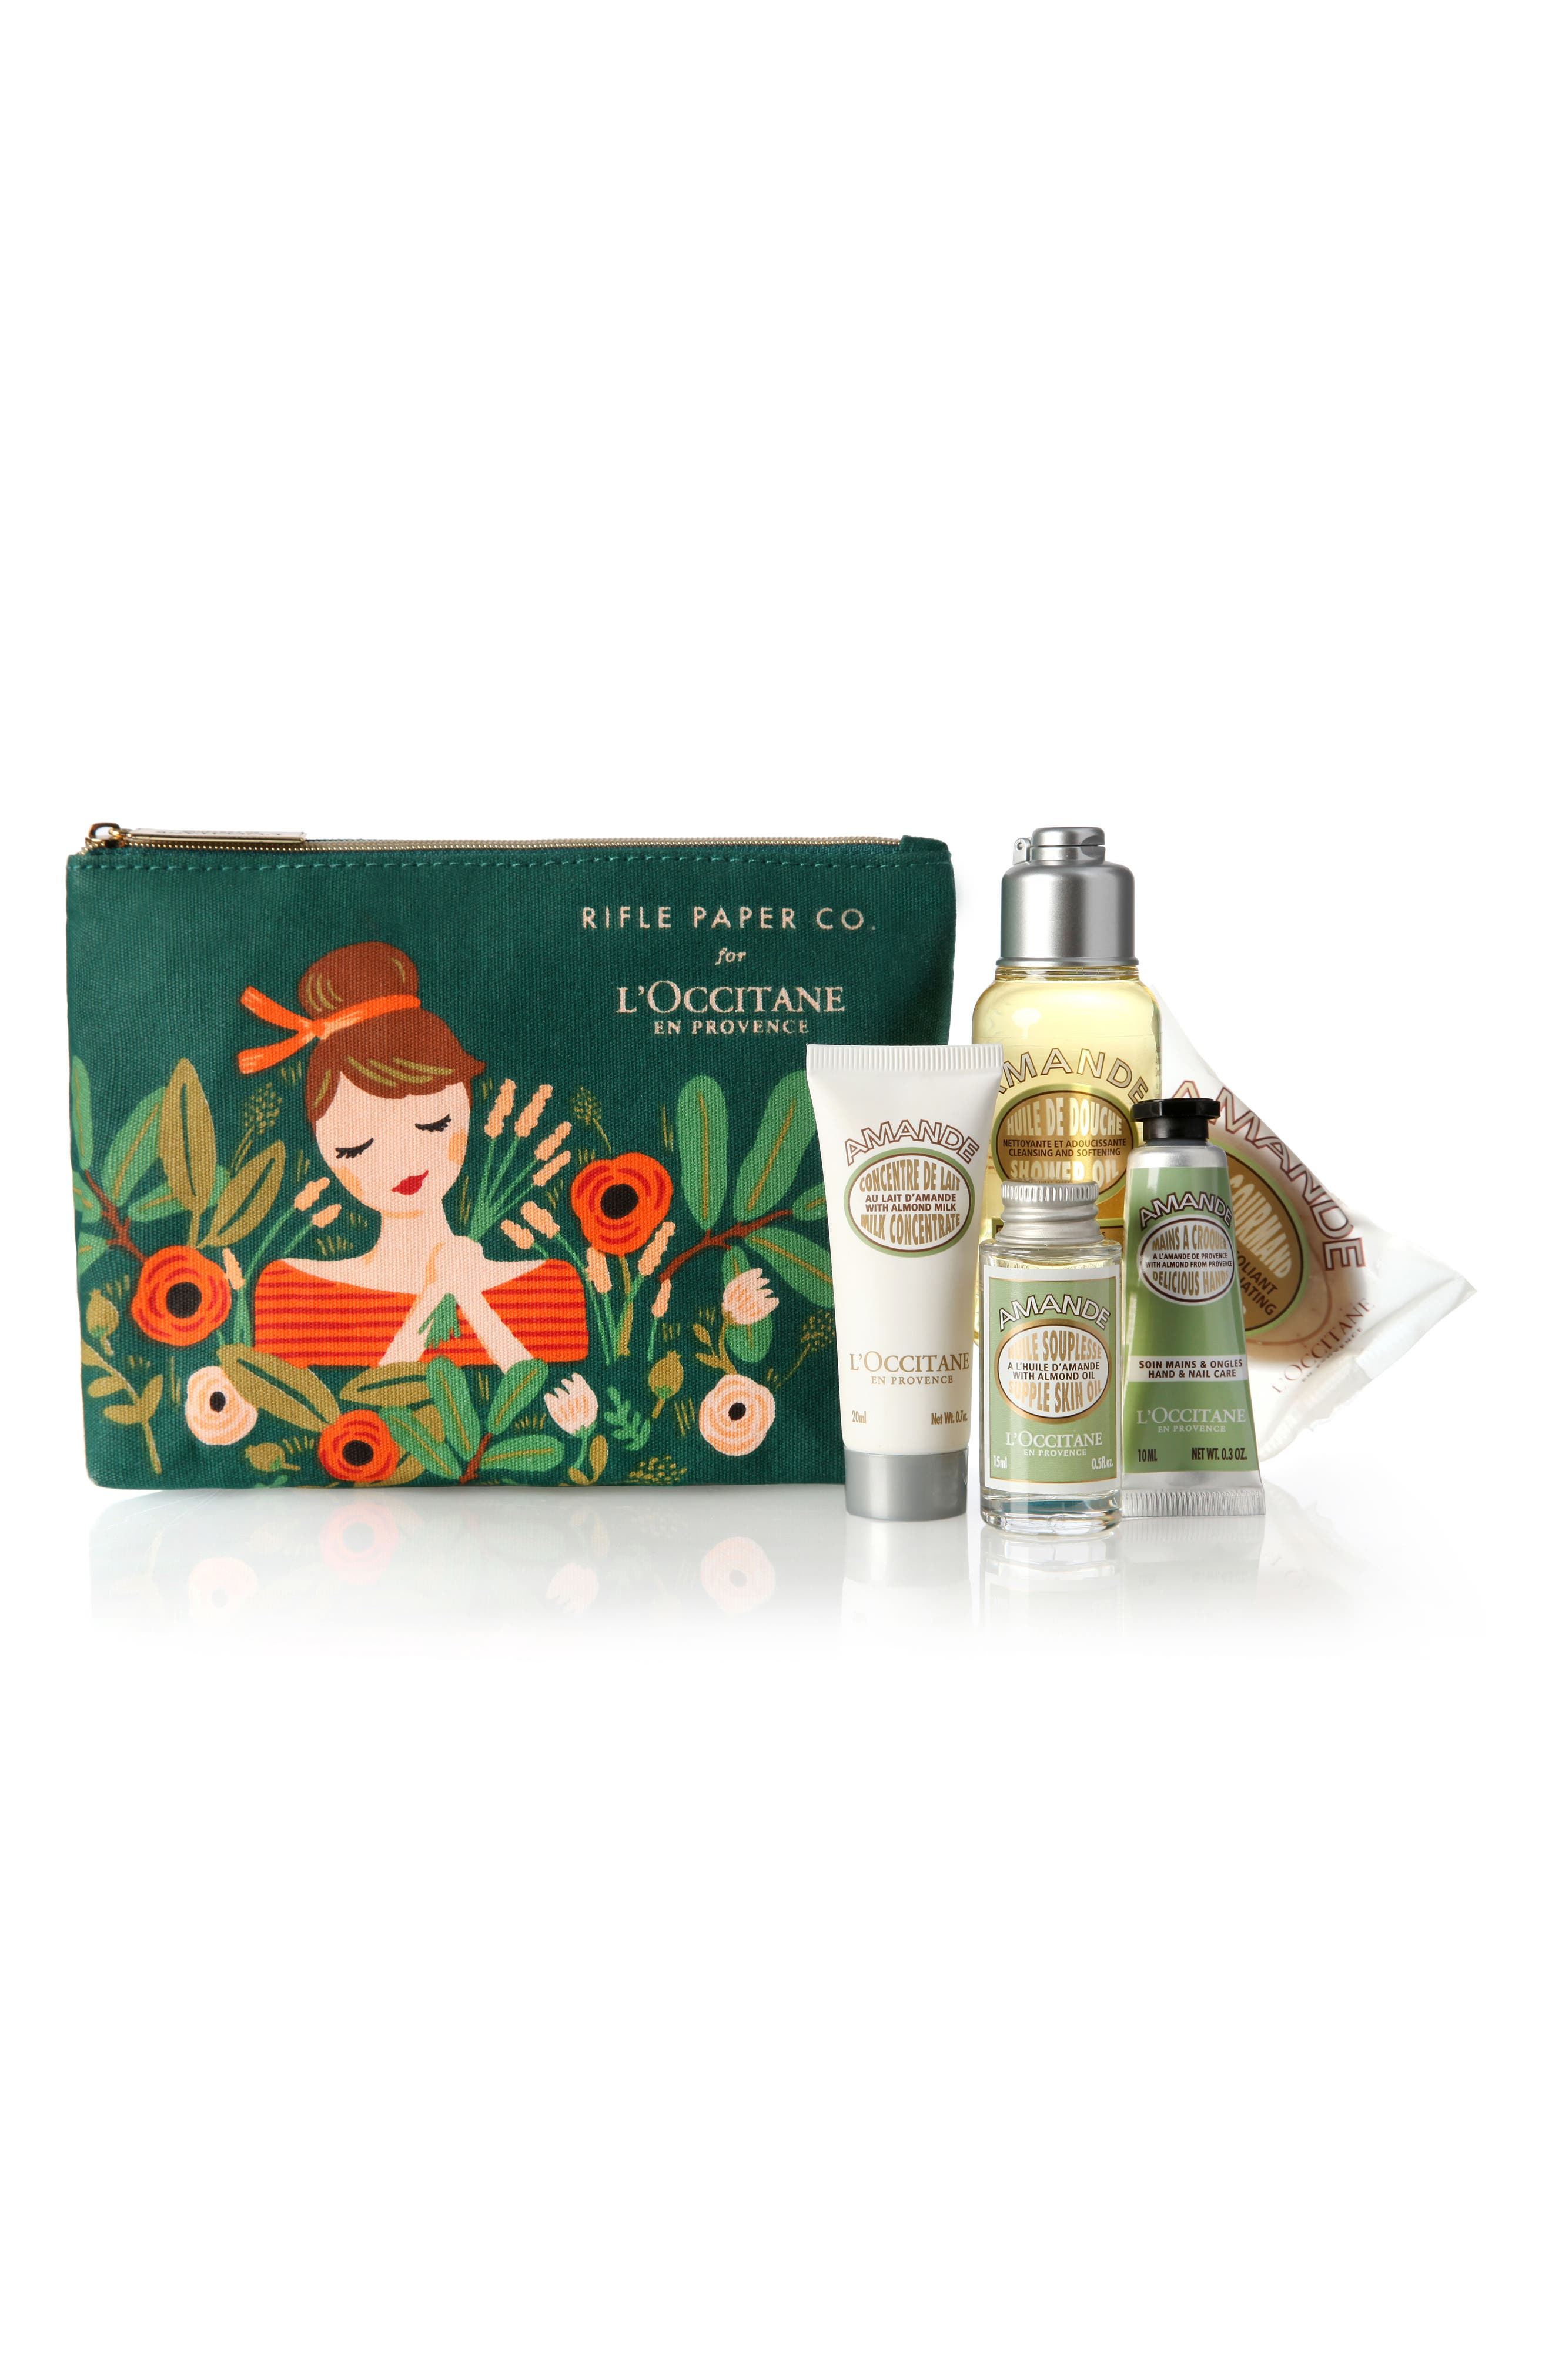 Main Image - L'Occitane Rifle Paper Co. Almond Set ($38 Value)